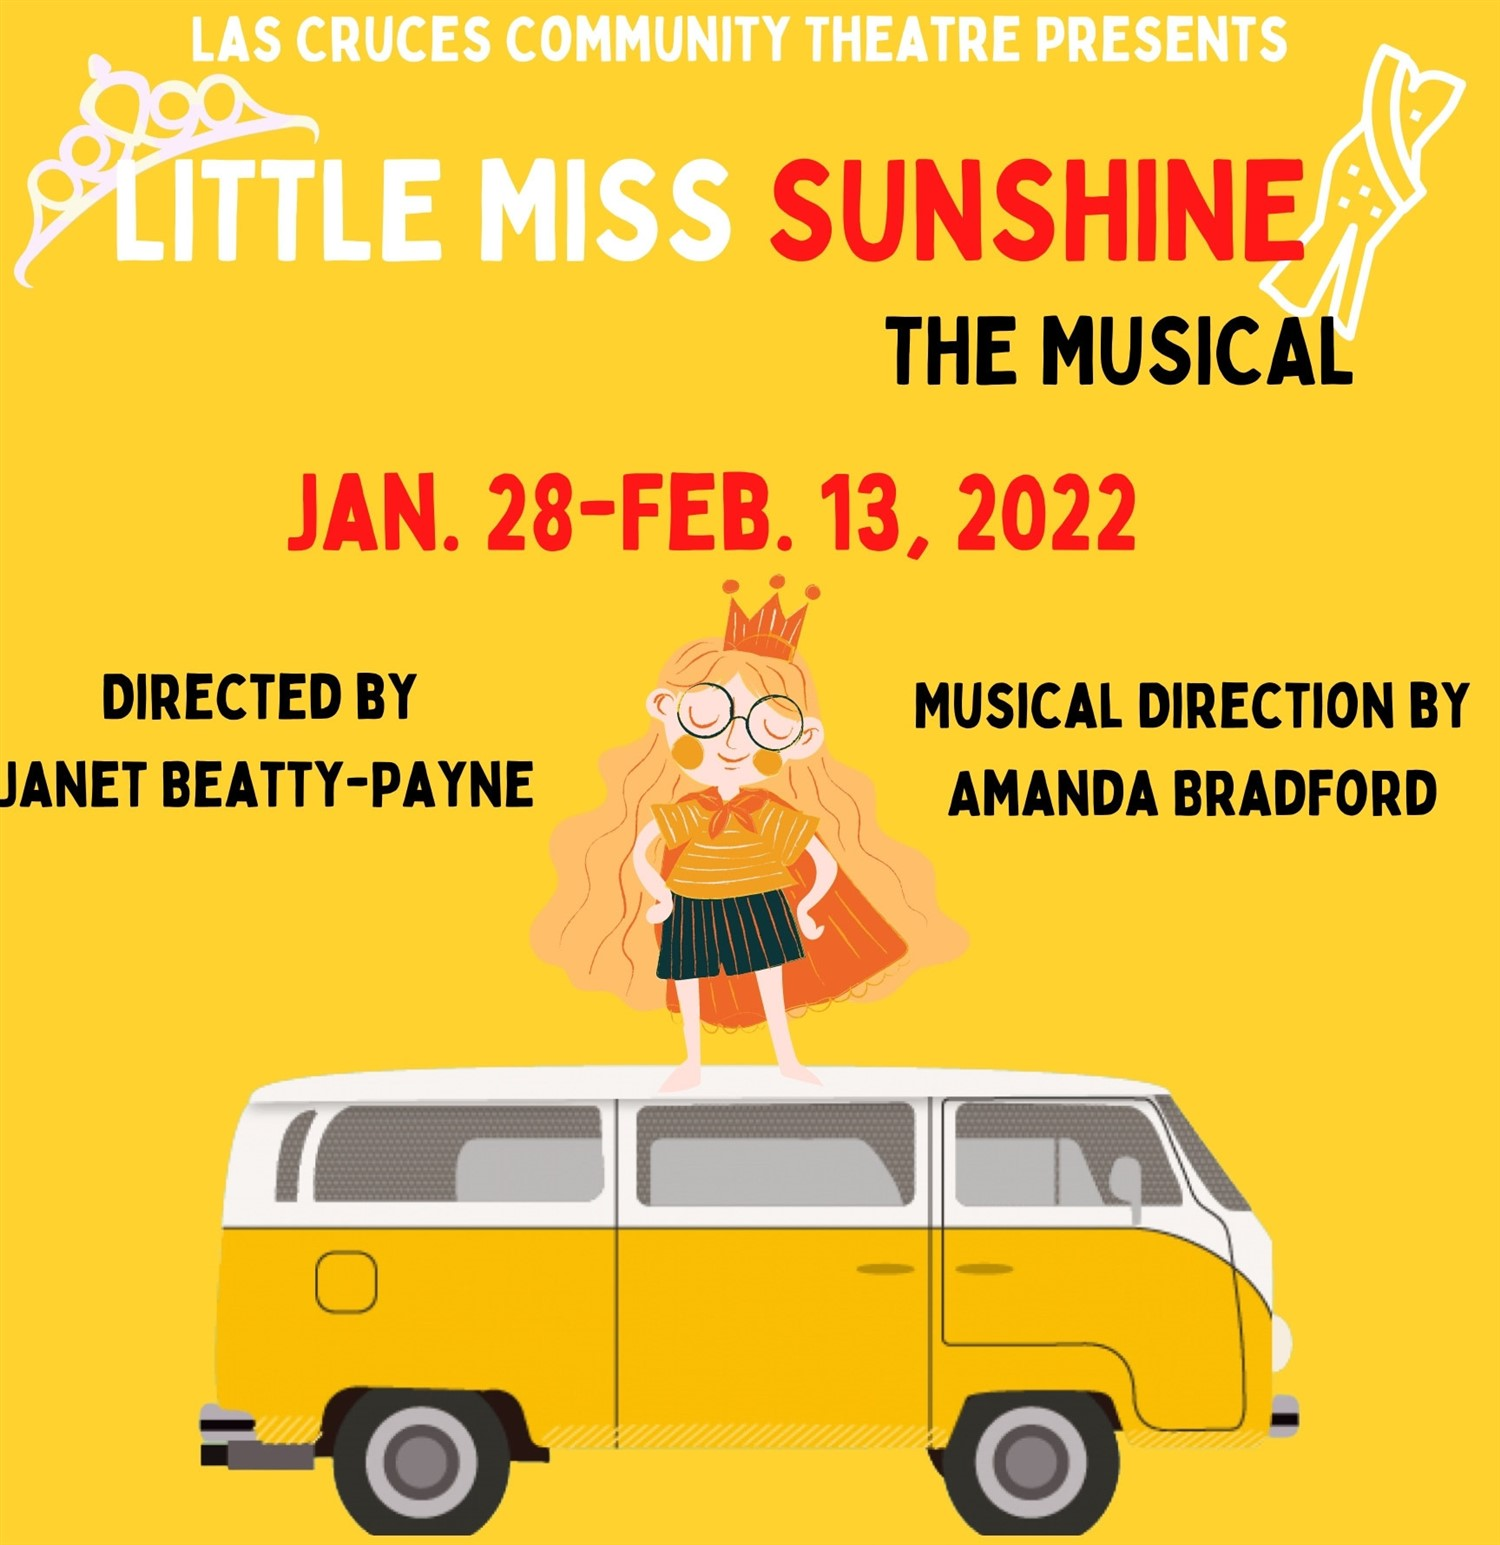 Little Miss Sunshine  on Feb 16, 00:00@LCCT - Pick a seat, Buy tickets and Get information on Las Cruces Community Theatre lcct